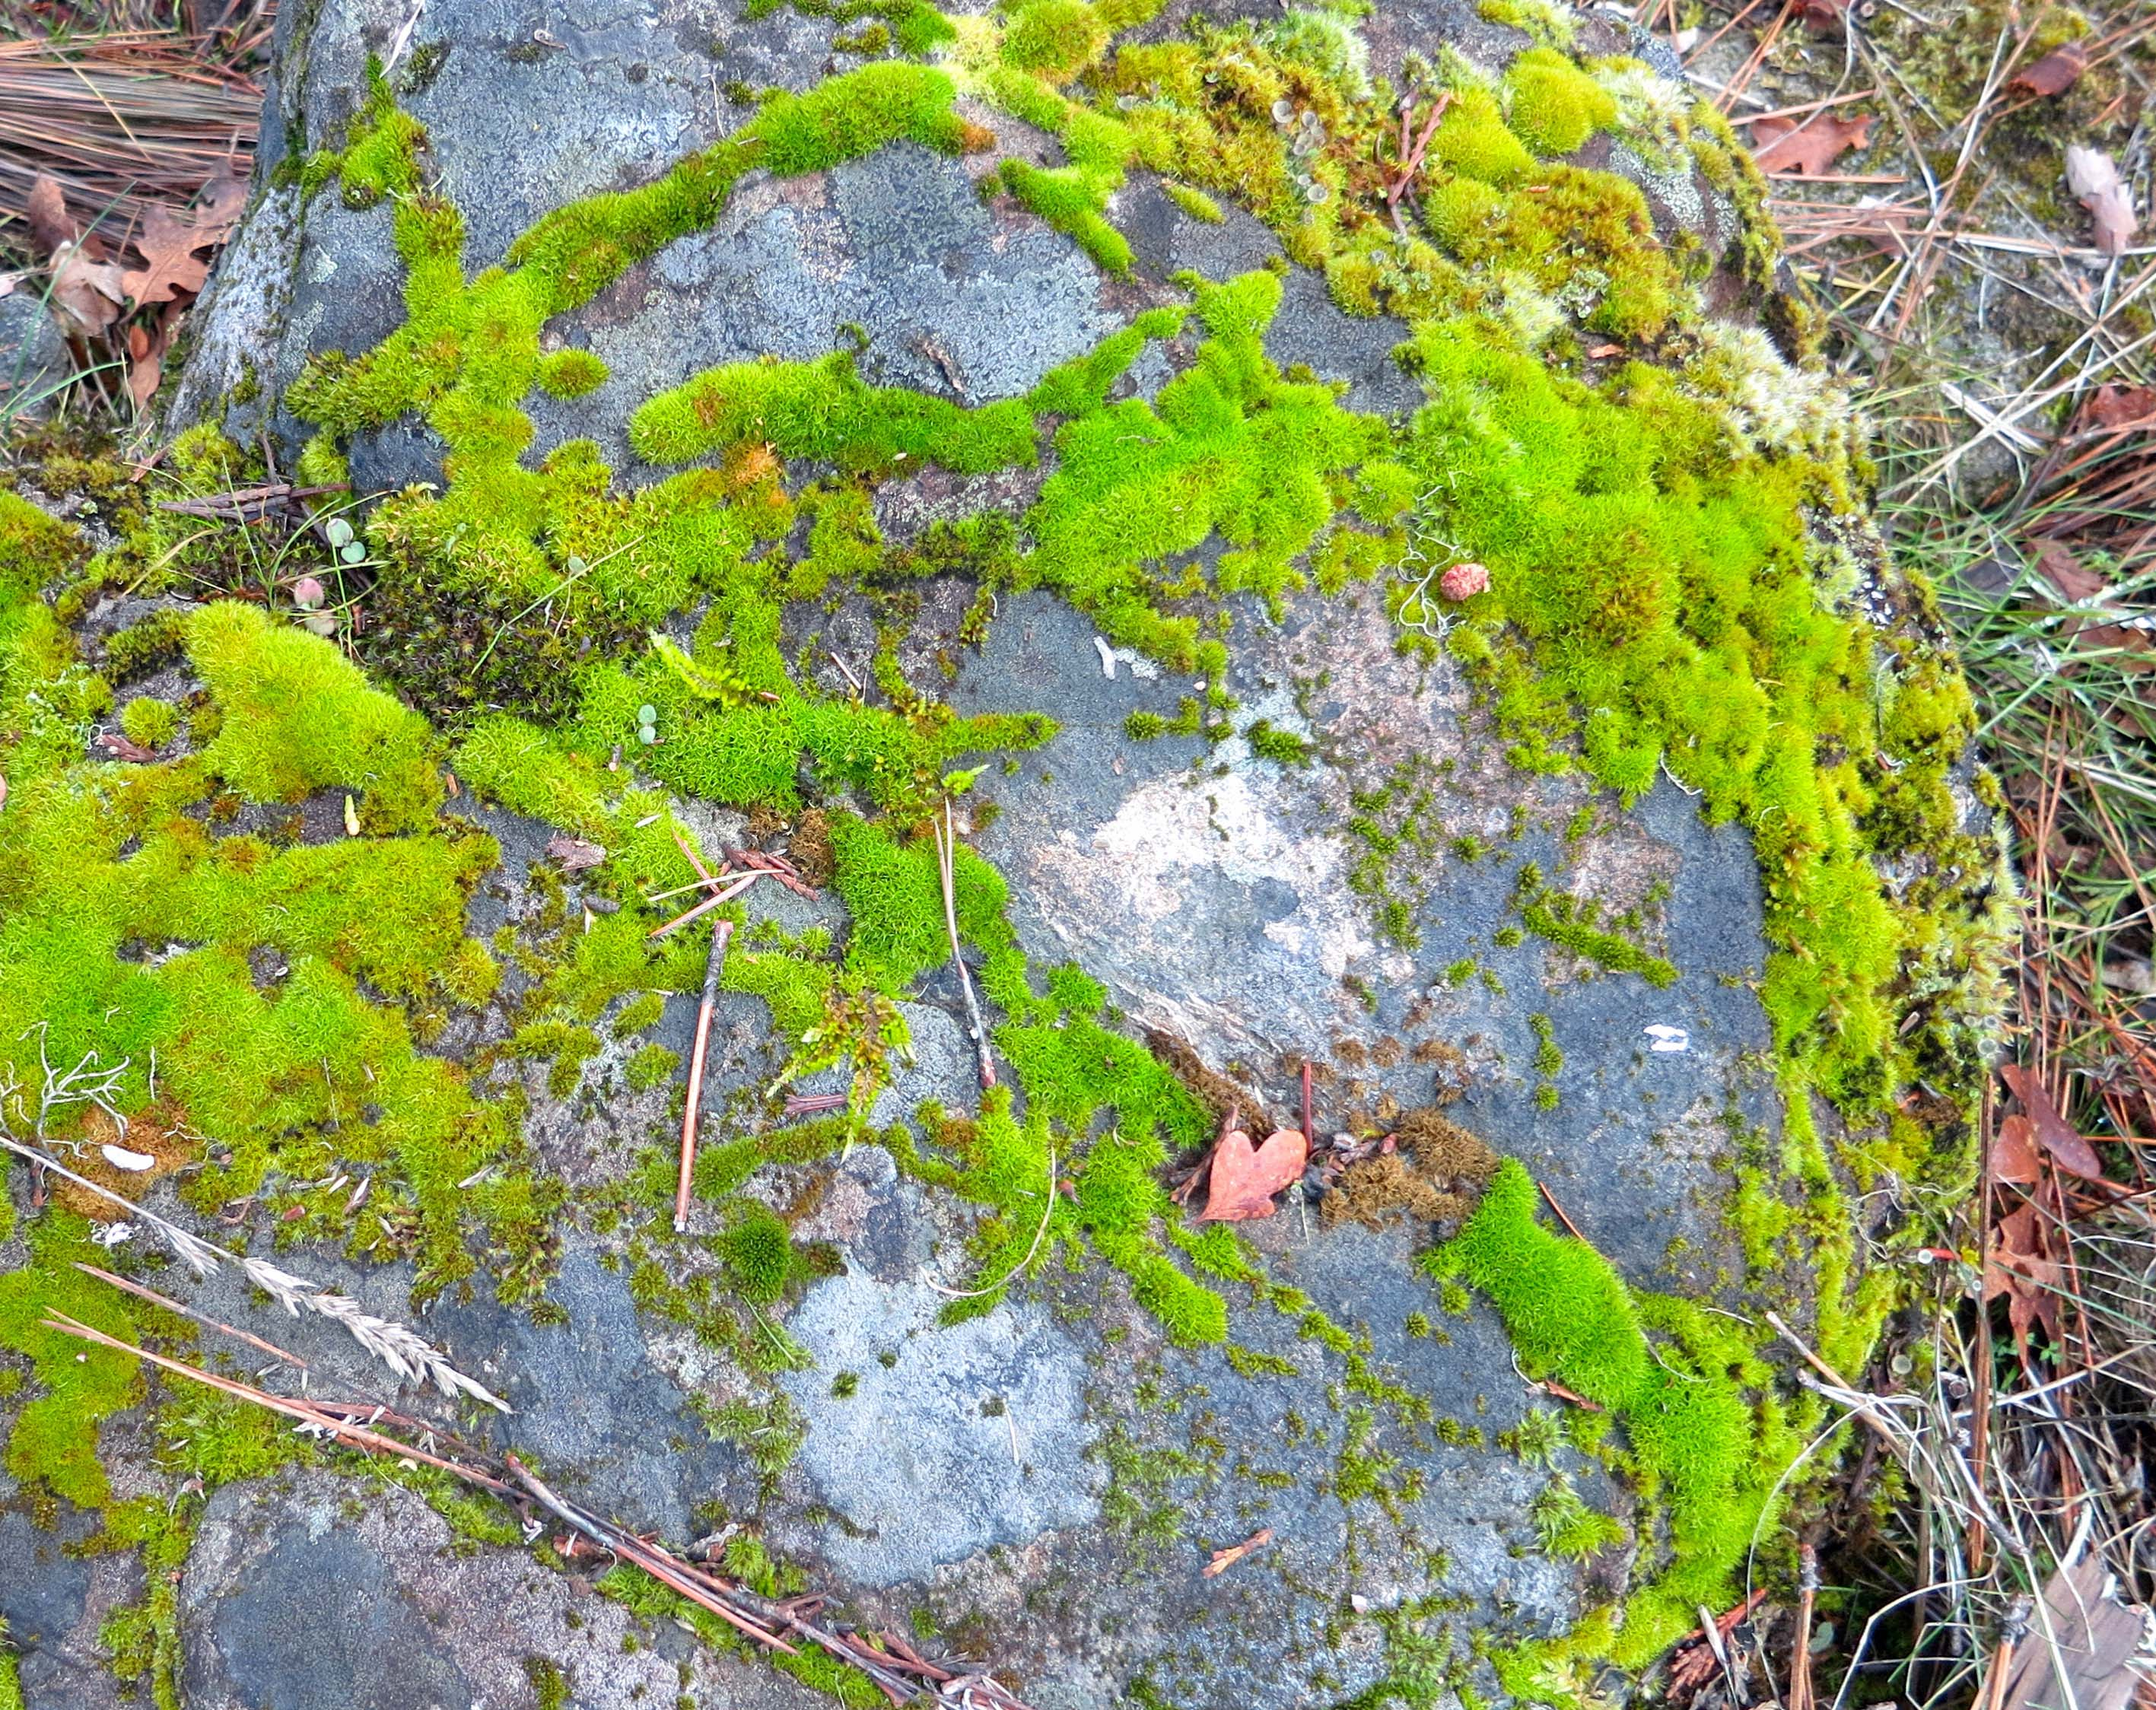 River rock covered in moss on Applegate River in Oregon. Photo by Curtis Mekemson.